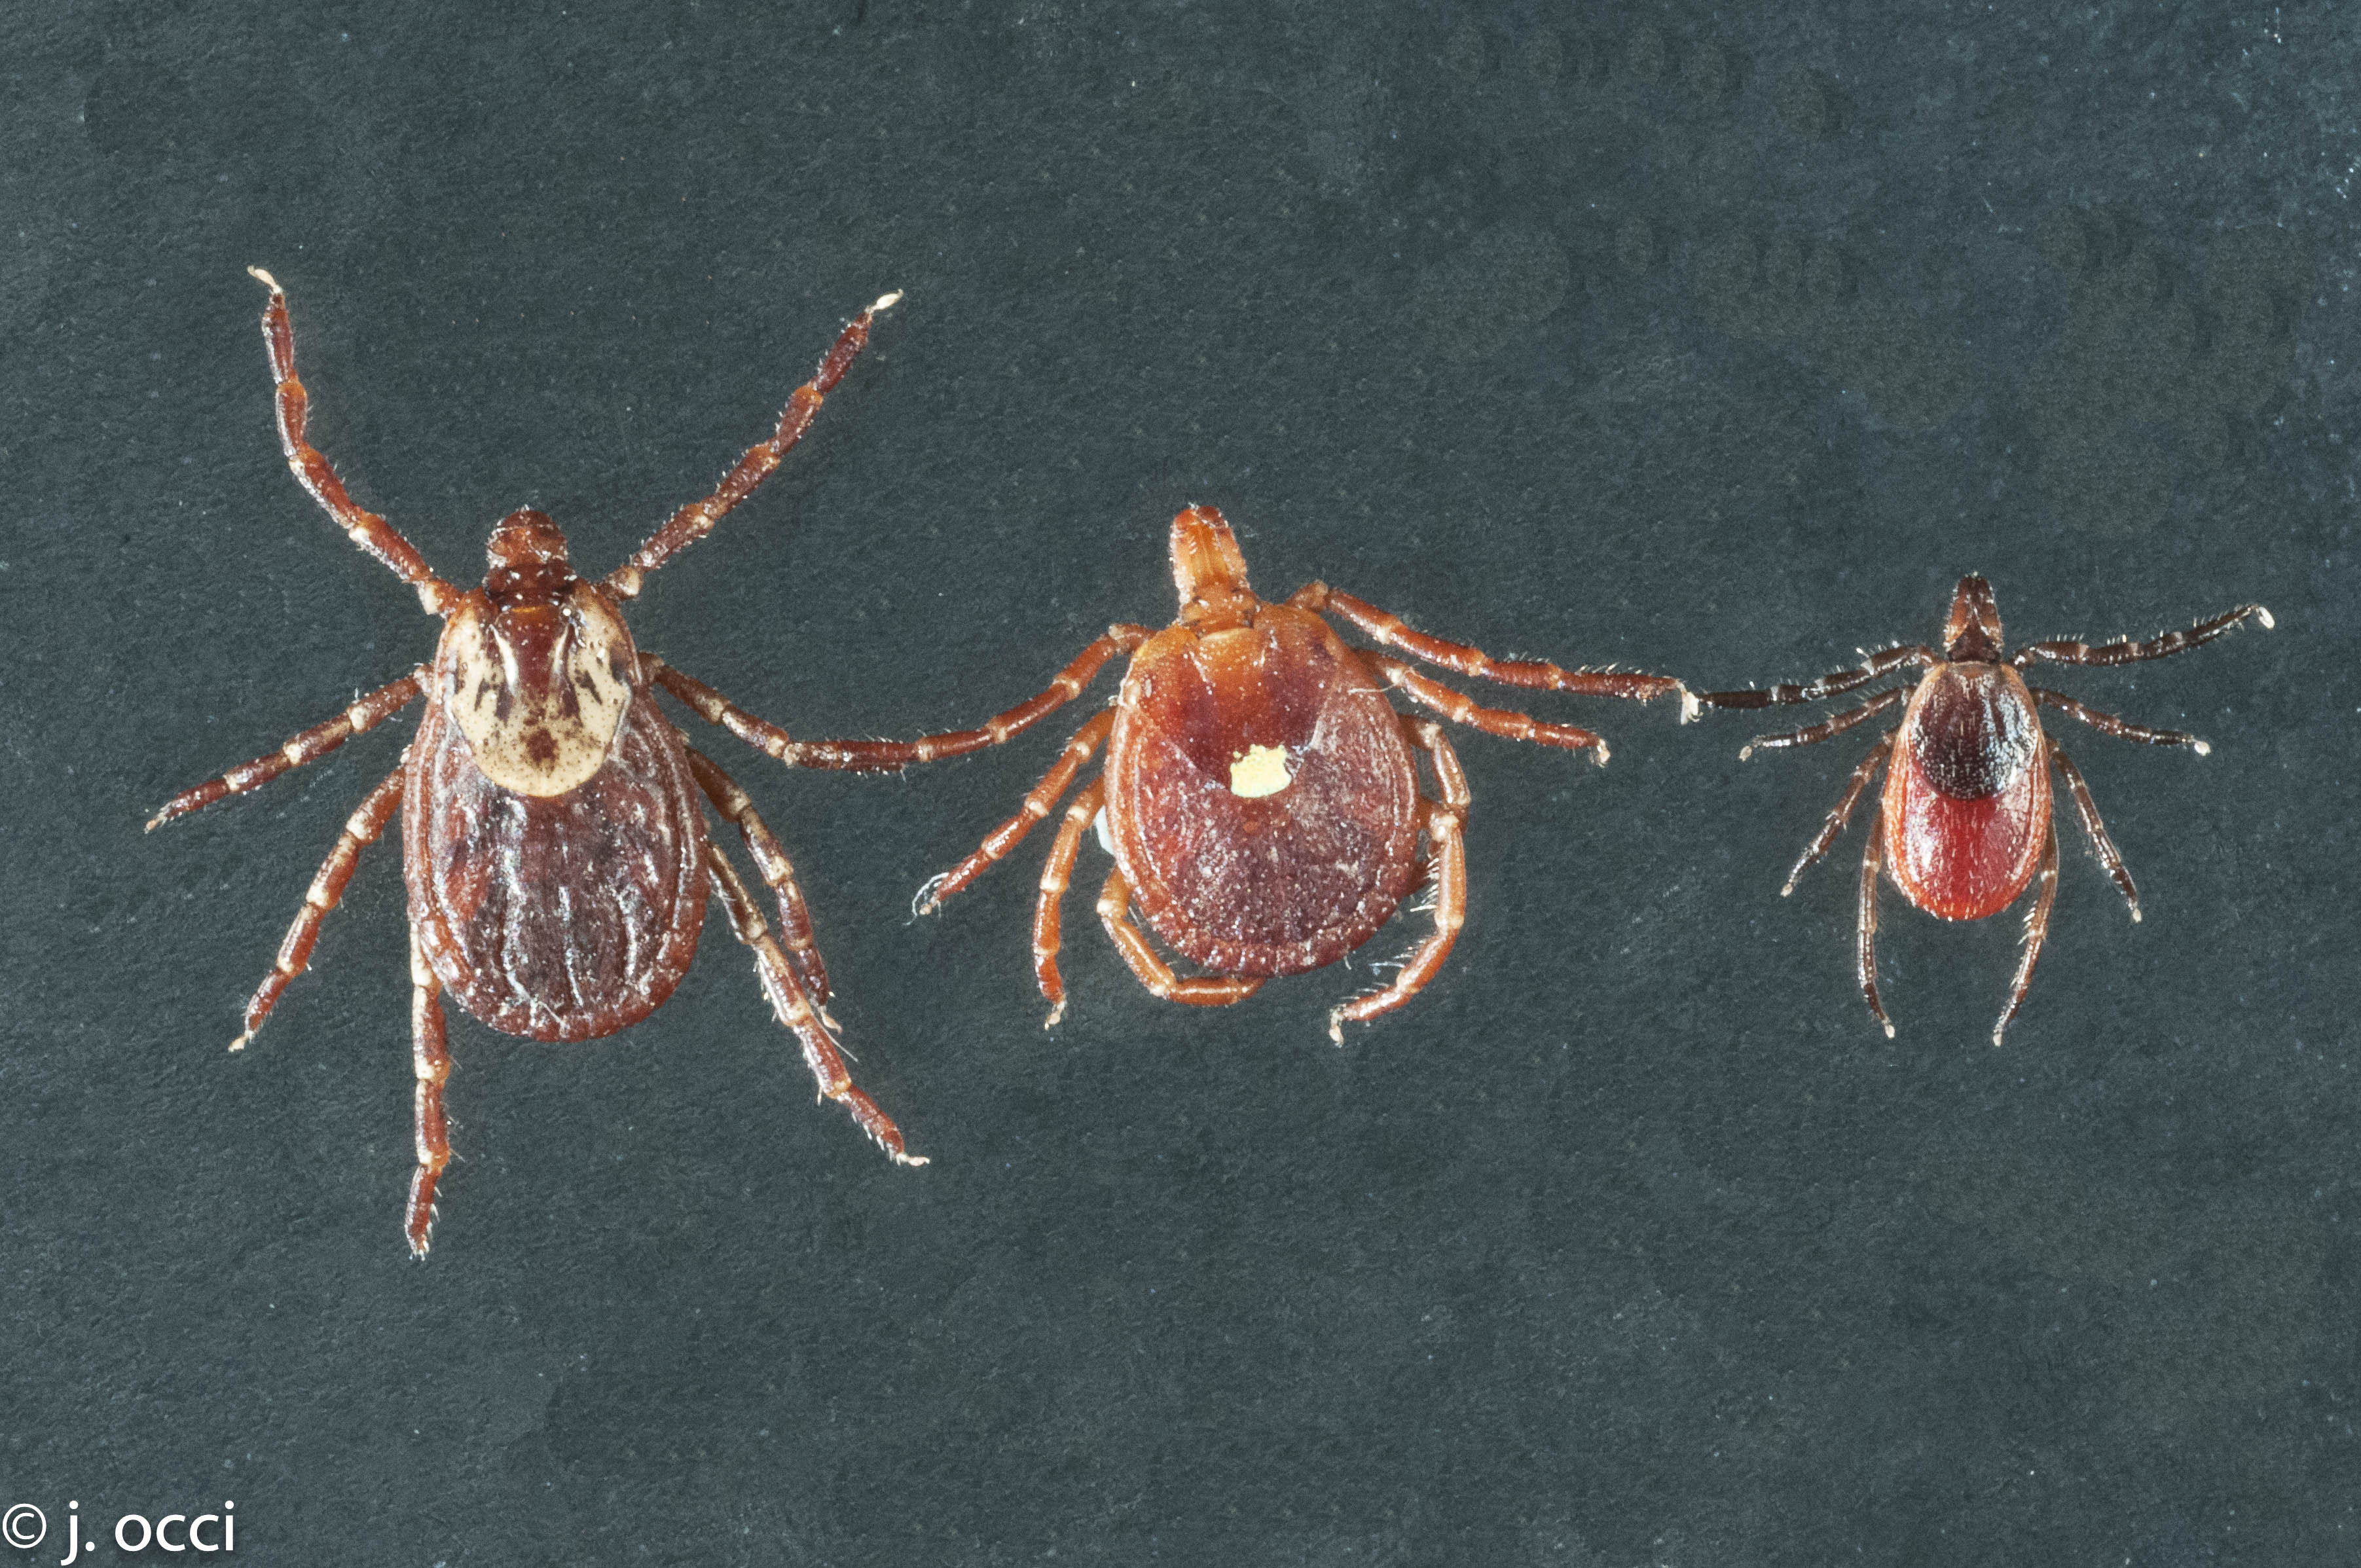 how to kill ticks on dogs